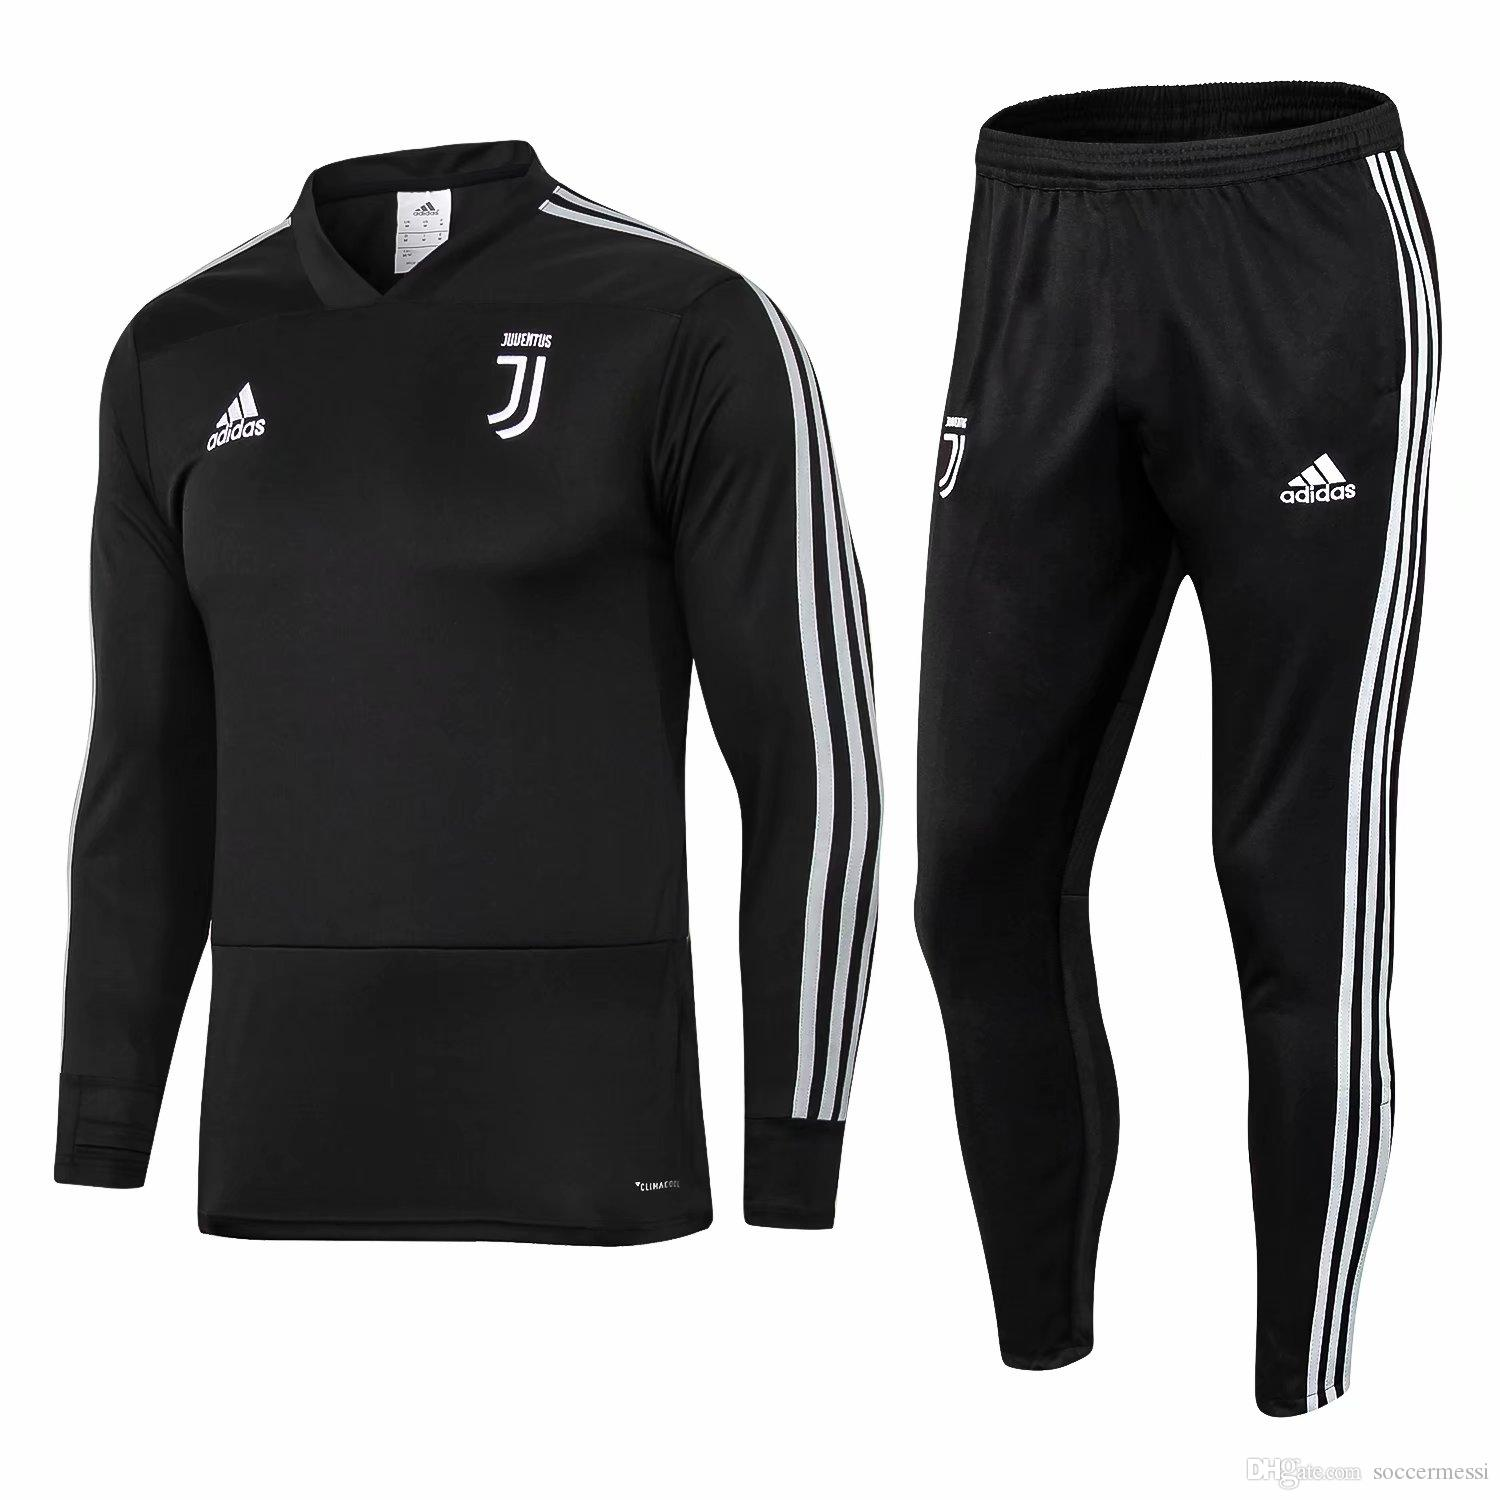 1907430a0 Free Shipping18-19 Juve New Training Suit No. 7 C Ronaldo No. 10 ...